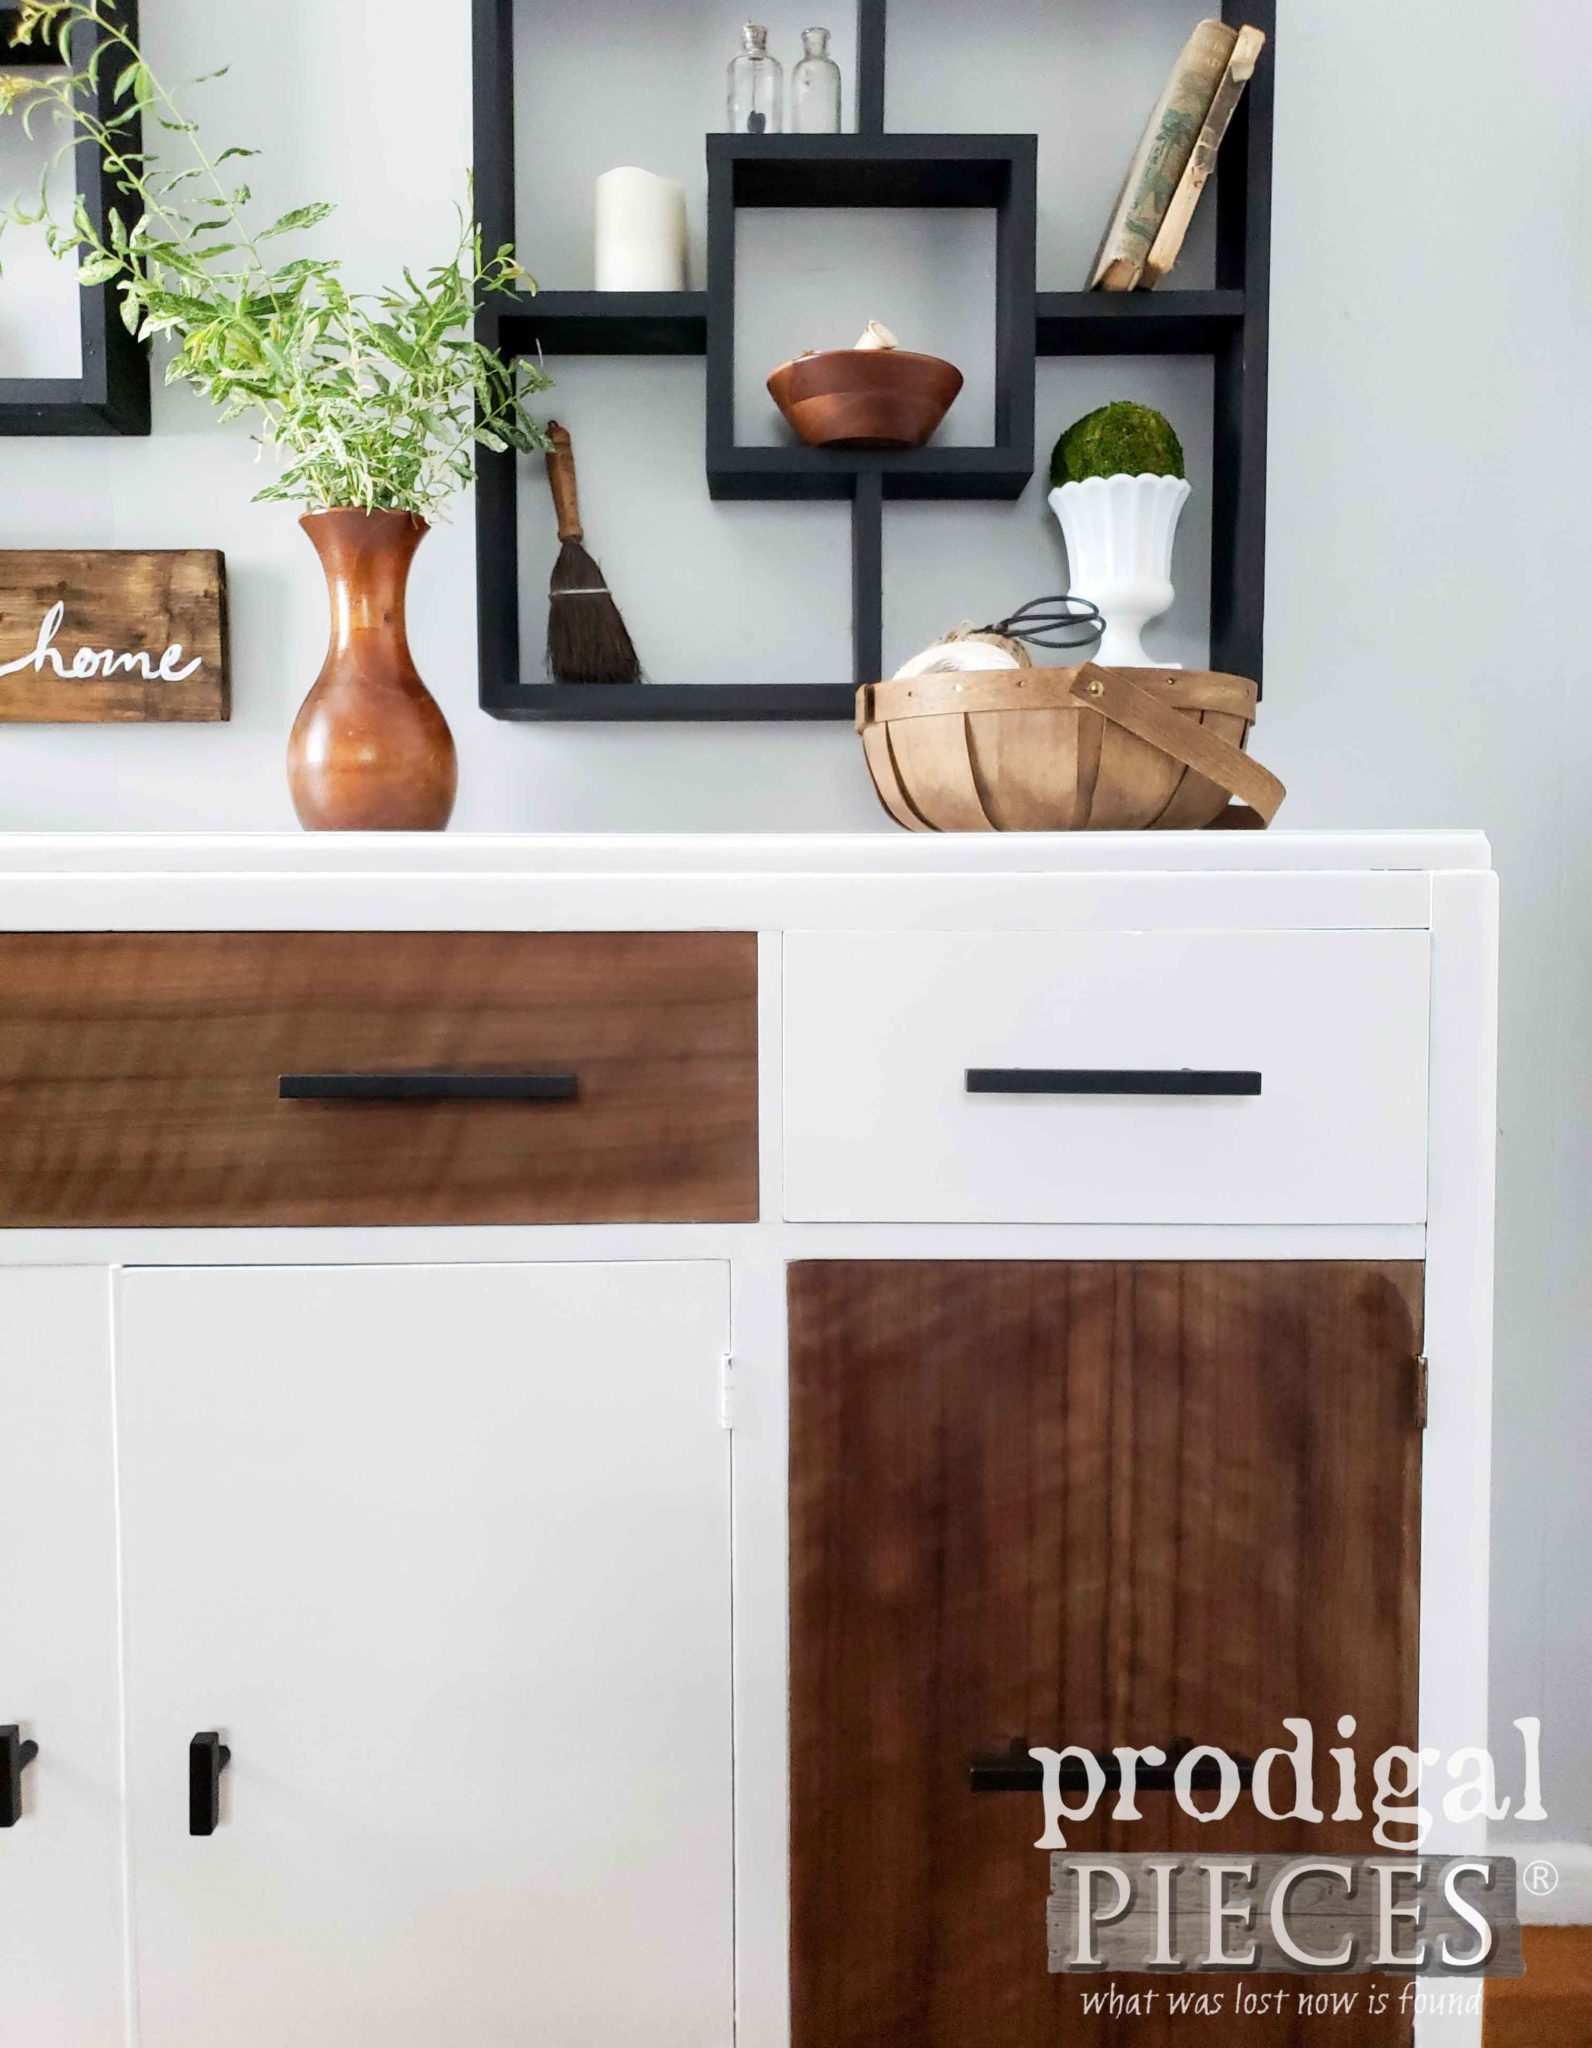 Flat Black Bar Drawer Pulls for Modern Farmhouse Furniture Makeover by Larissa of Prodigal Pieces | prodigalpieces.com